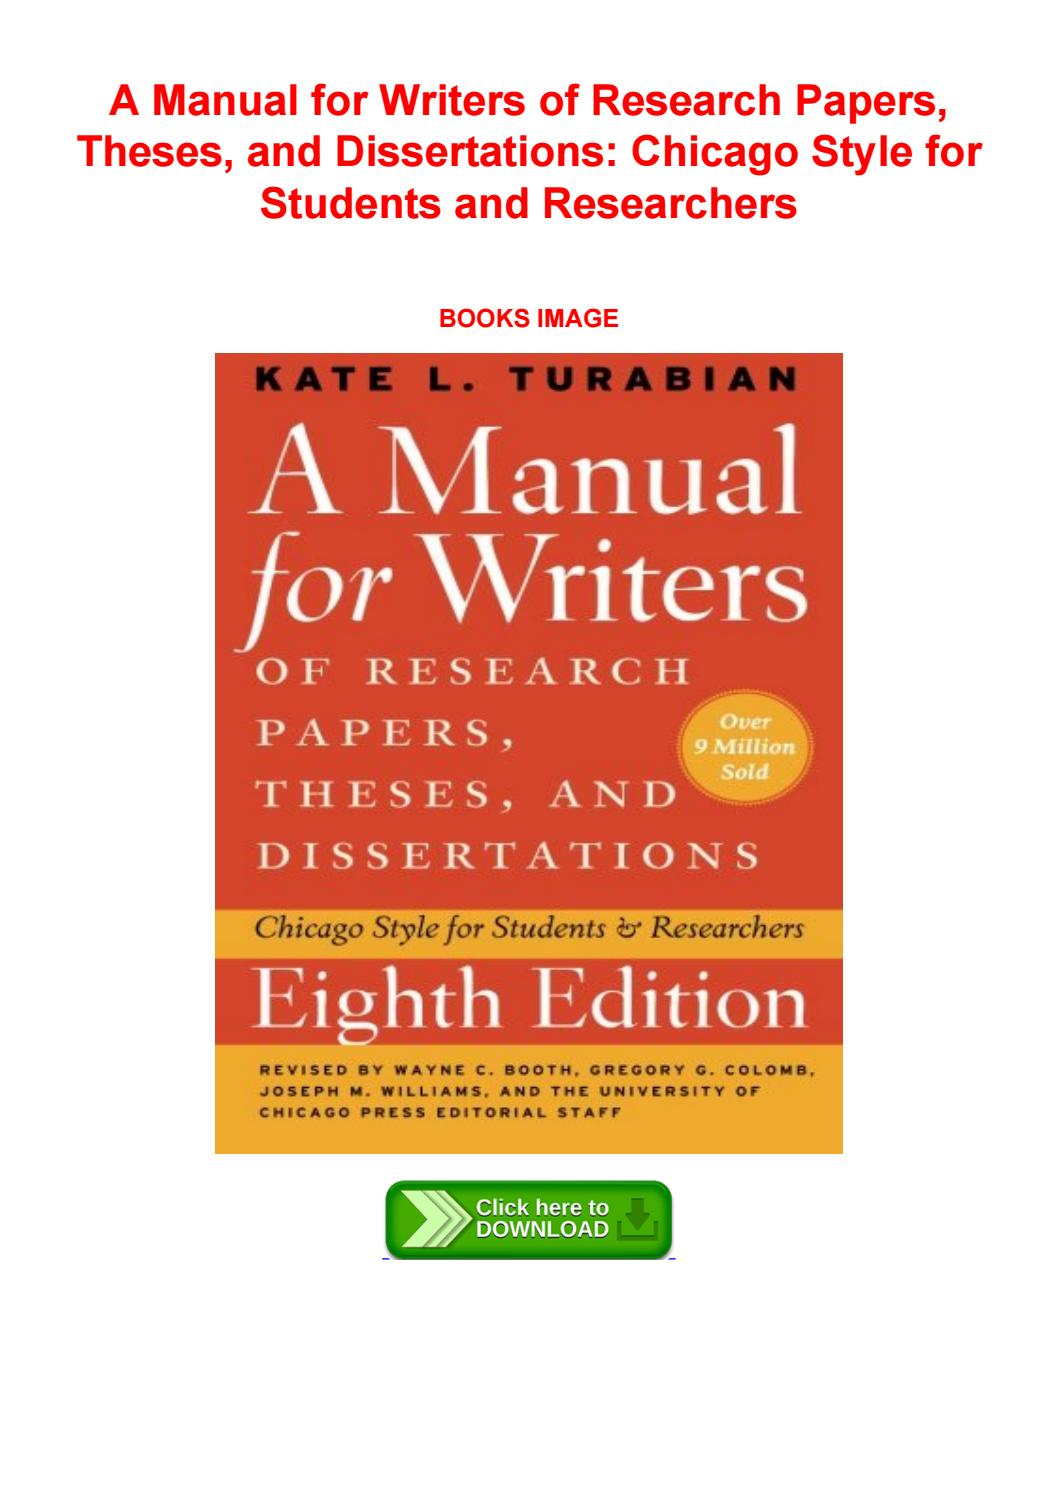 015 Research Paper Page 1 Manual For Writers Of Papers Theses And Dissertations 8th Staggering A Edition Pdf Full